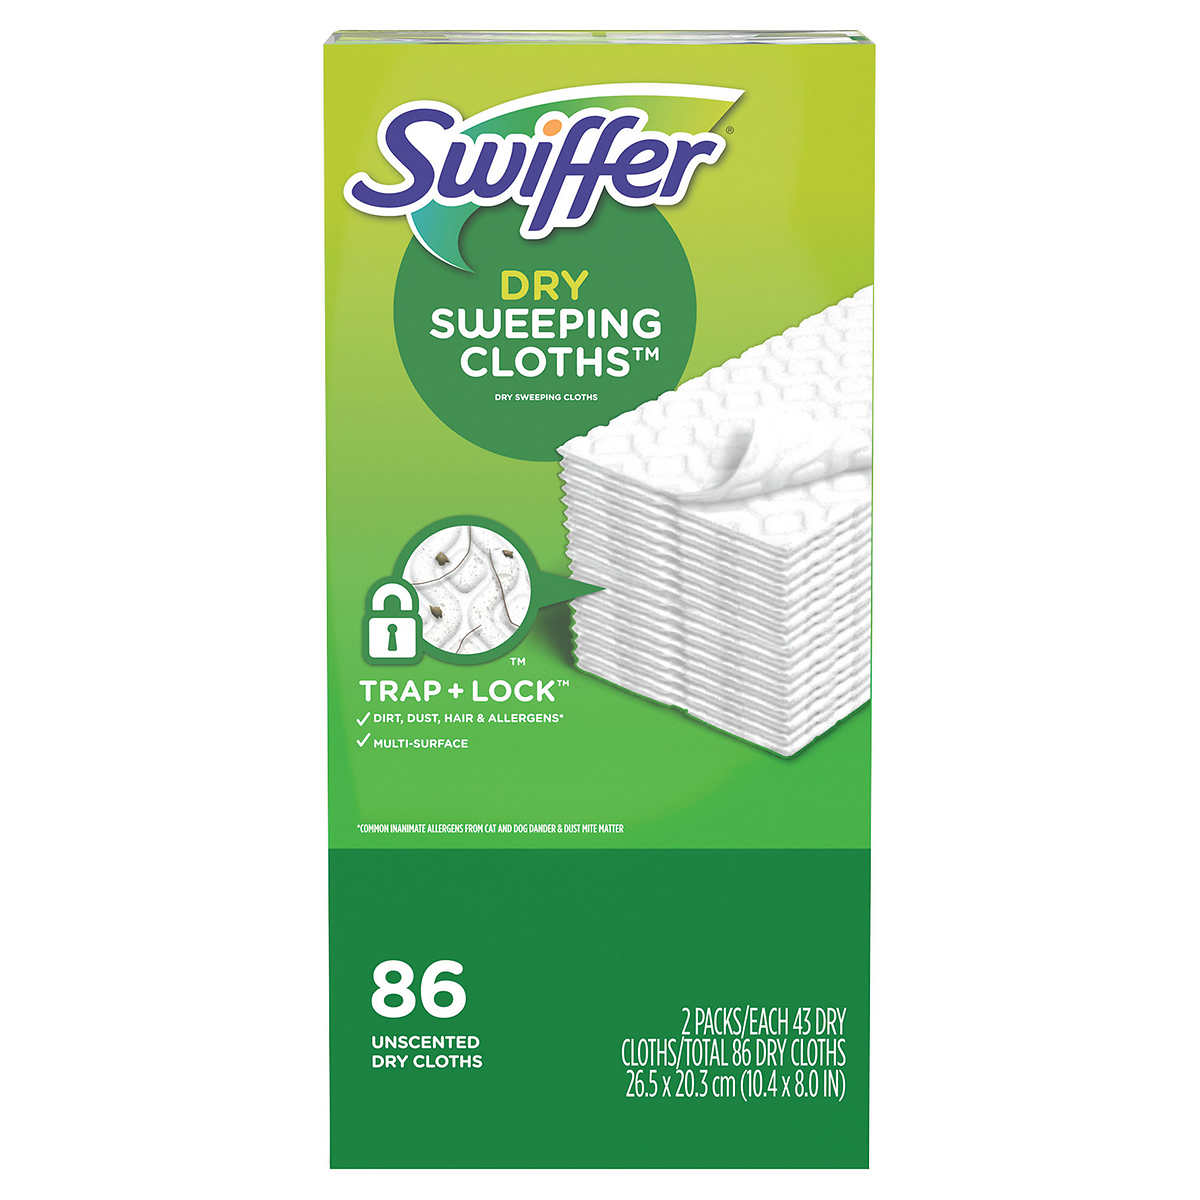 Swiffer Sweeper Dry Sweeping Cloth Refills, 43-count, 2-pack